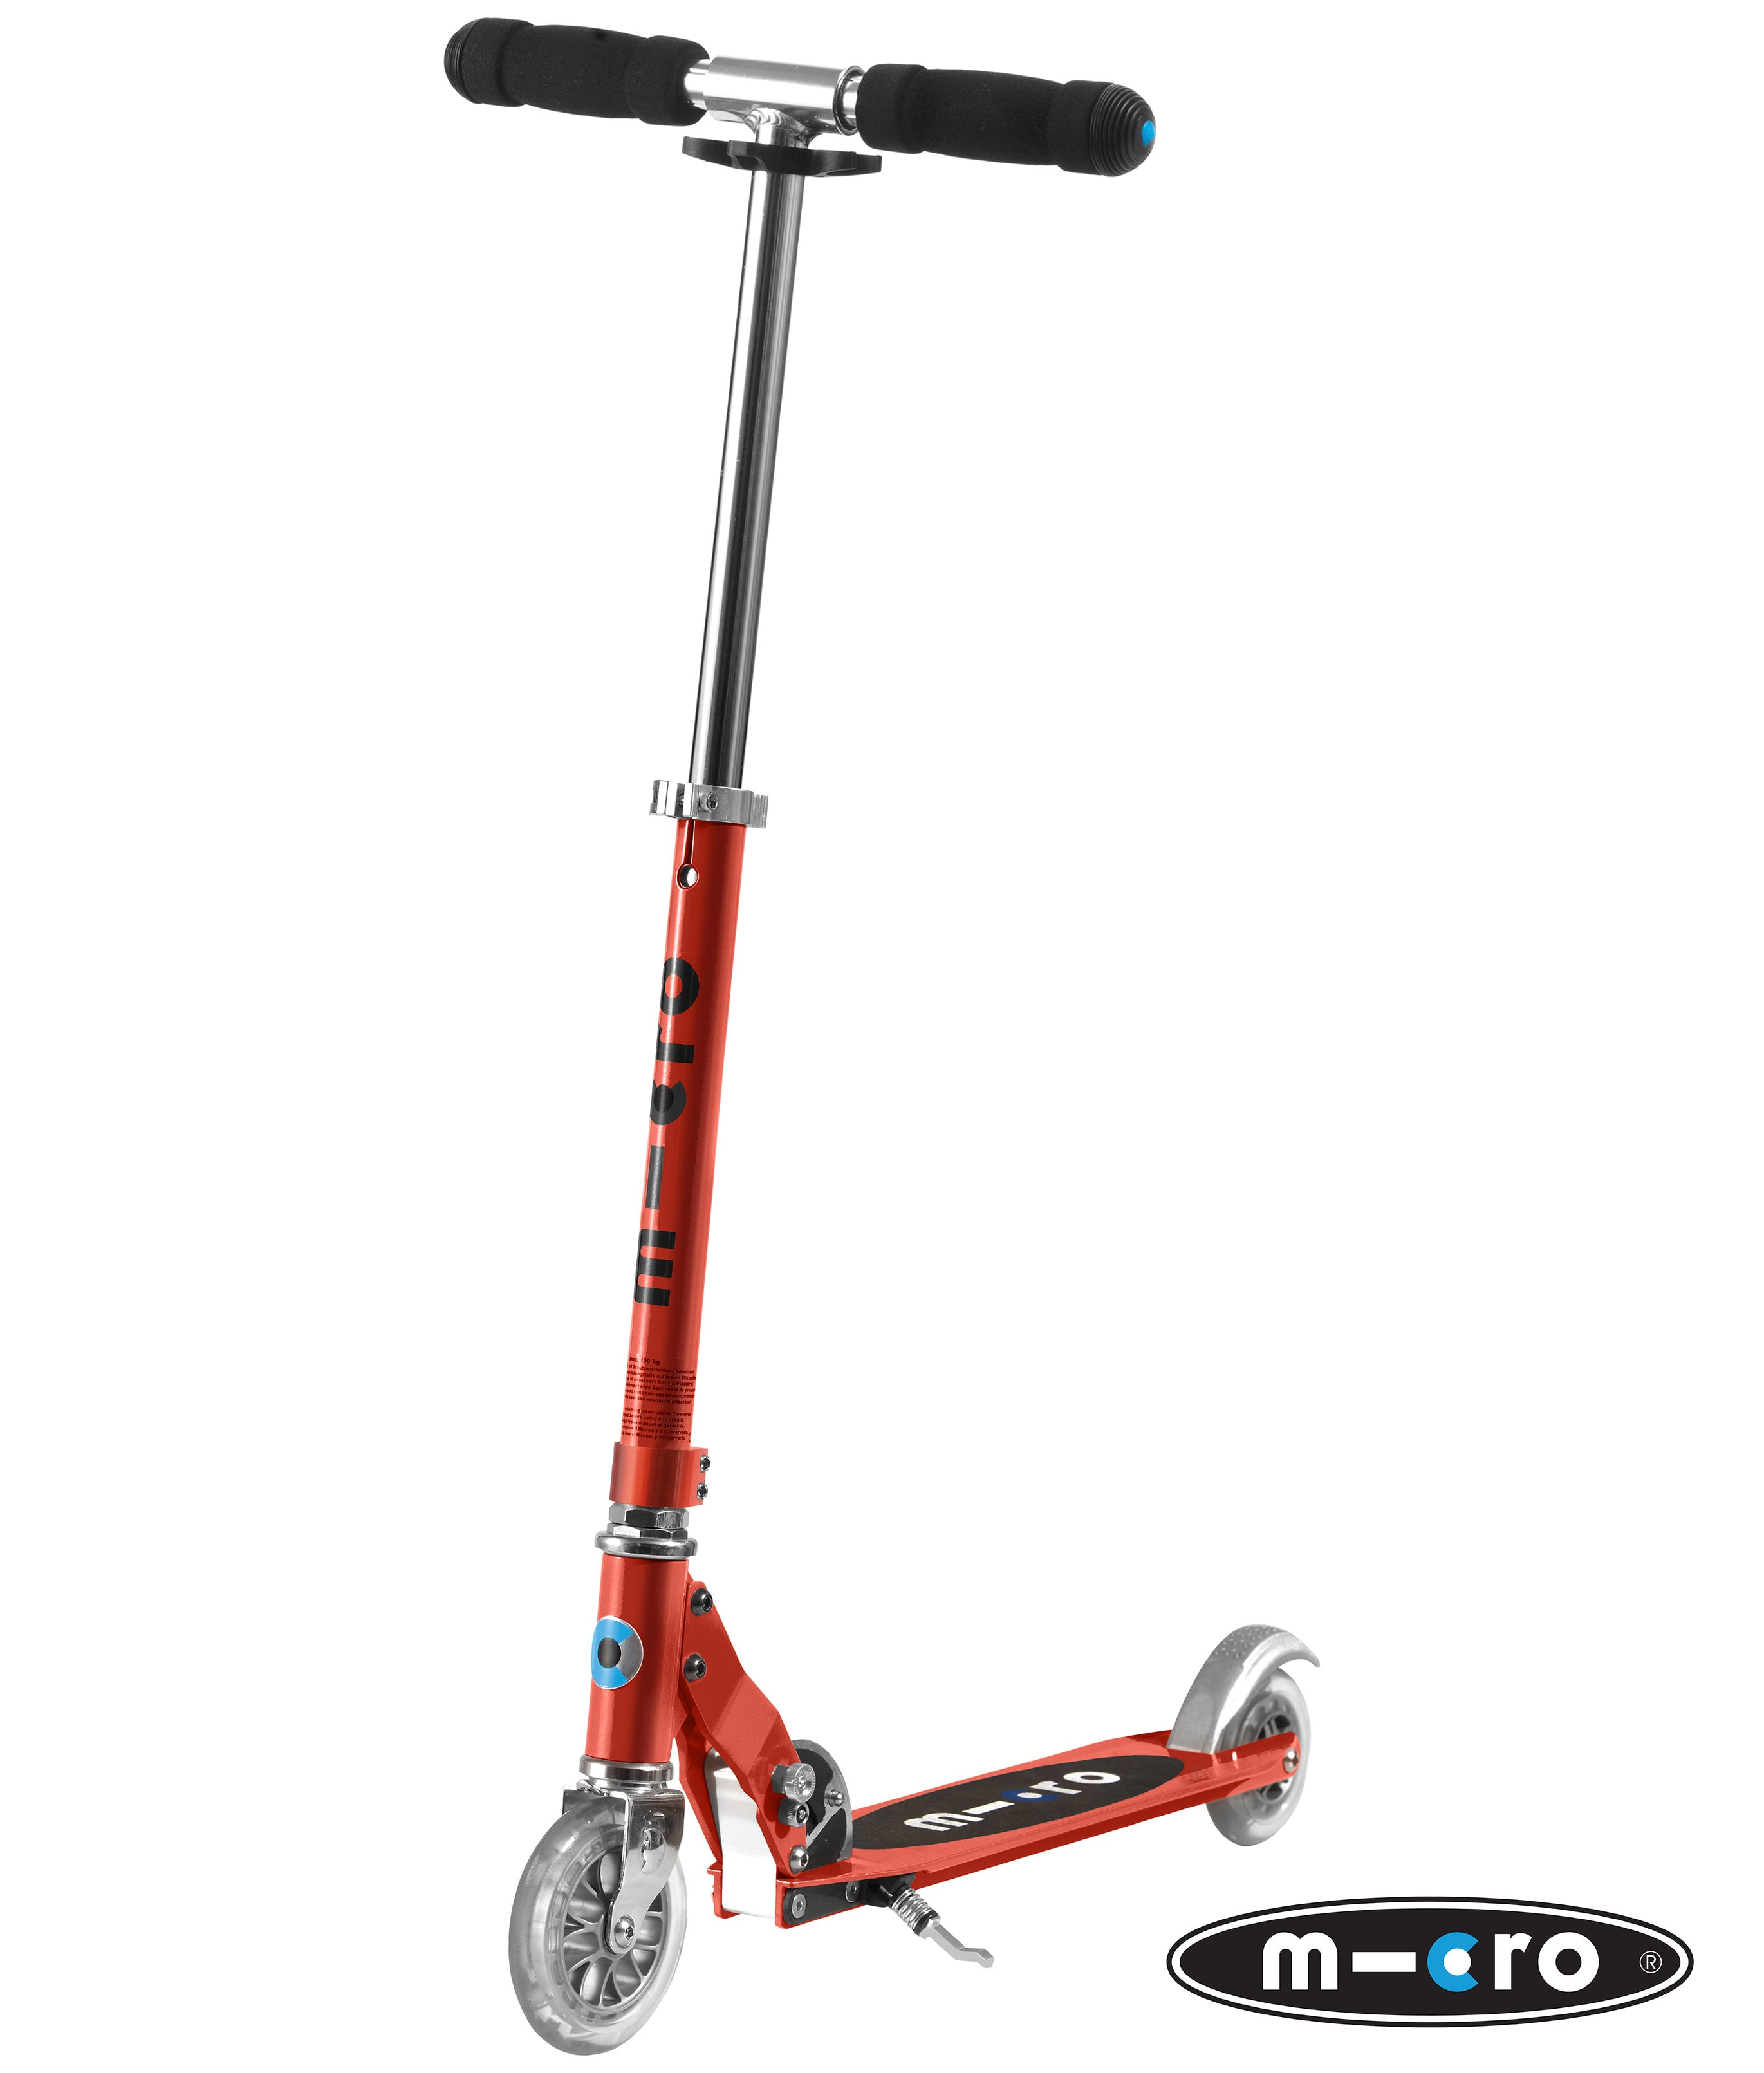 micro sprite folding scooter red complete scooters. Black Bedroom Furniture Sets. Home Design Ideas